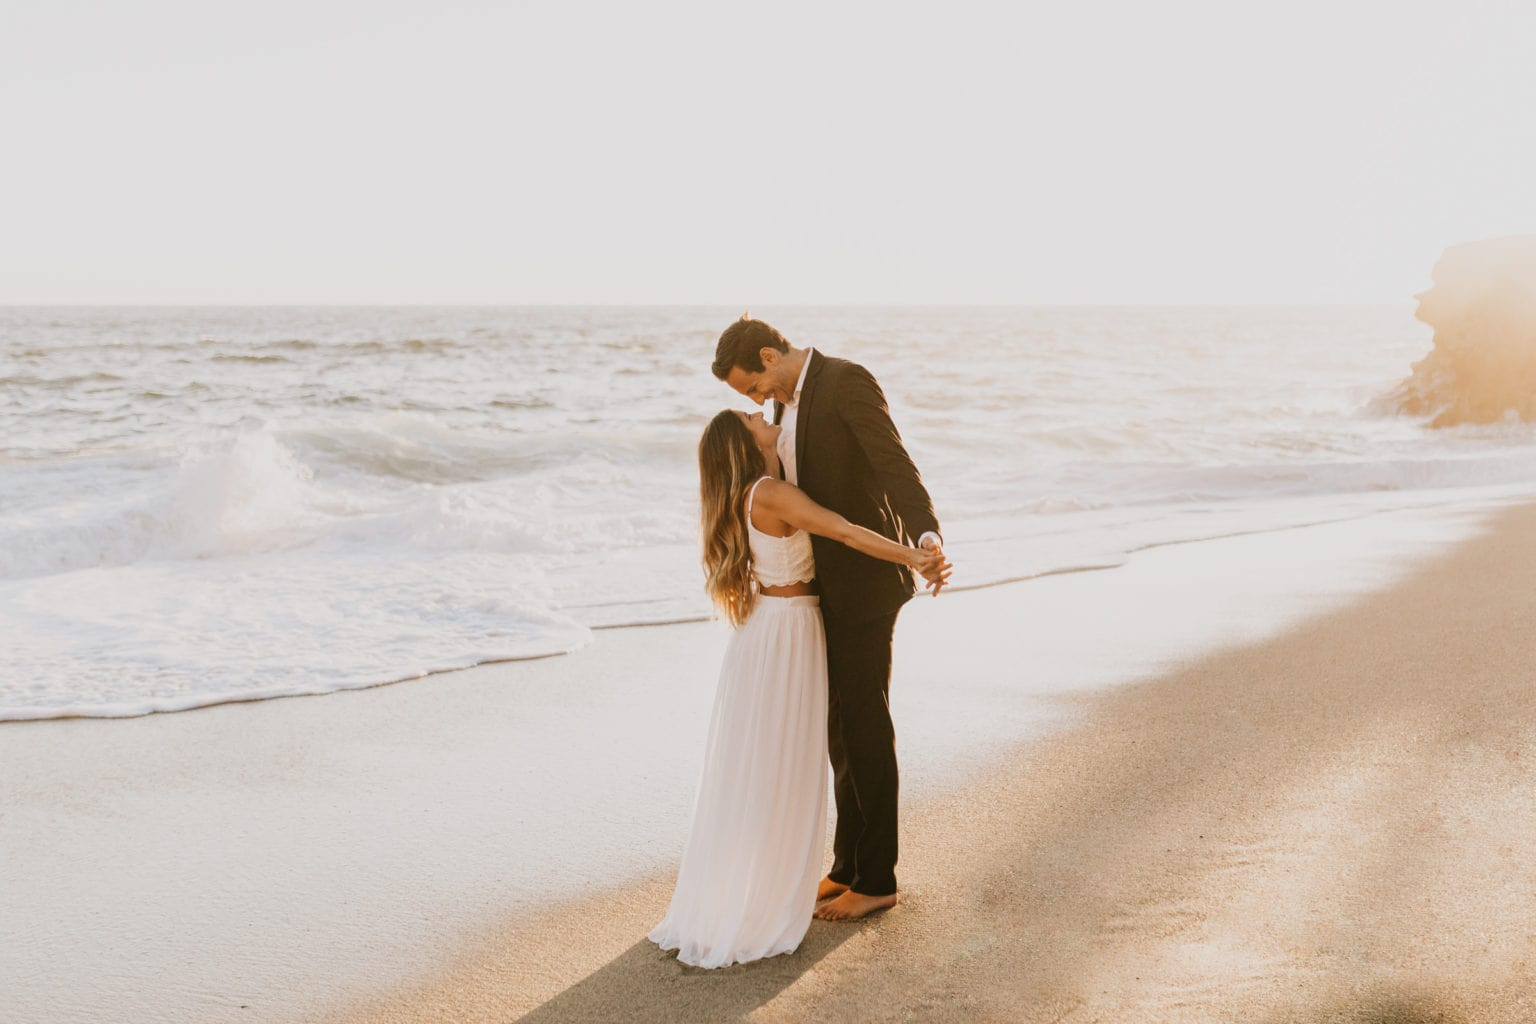 A couple having a sunset elopement at the beach during golden hour, captured by a California elopement photographer.